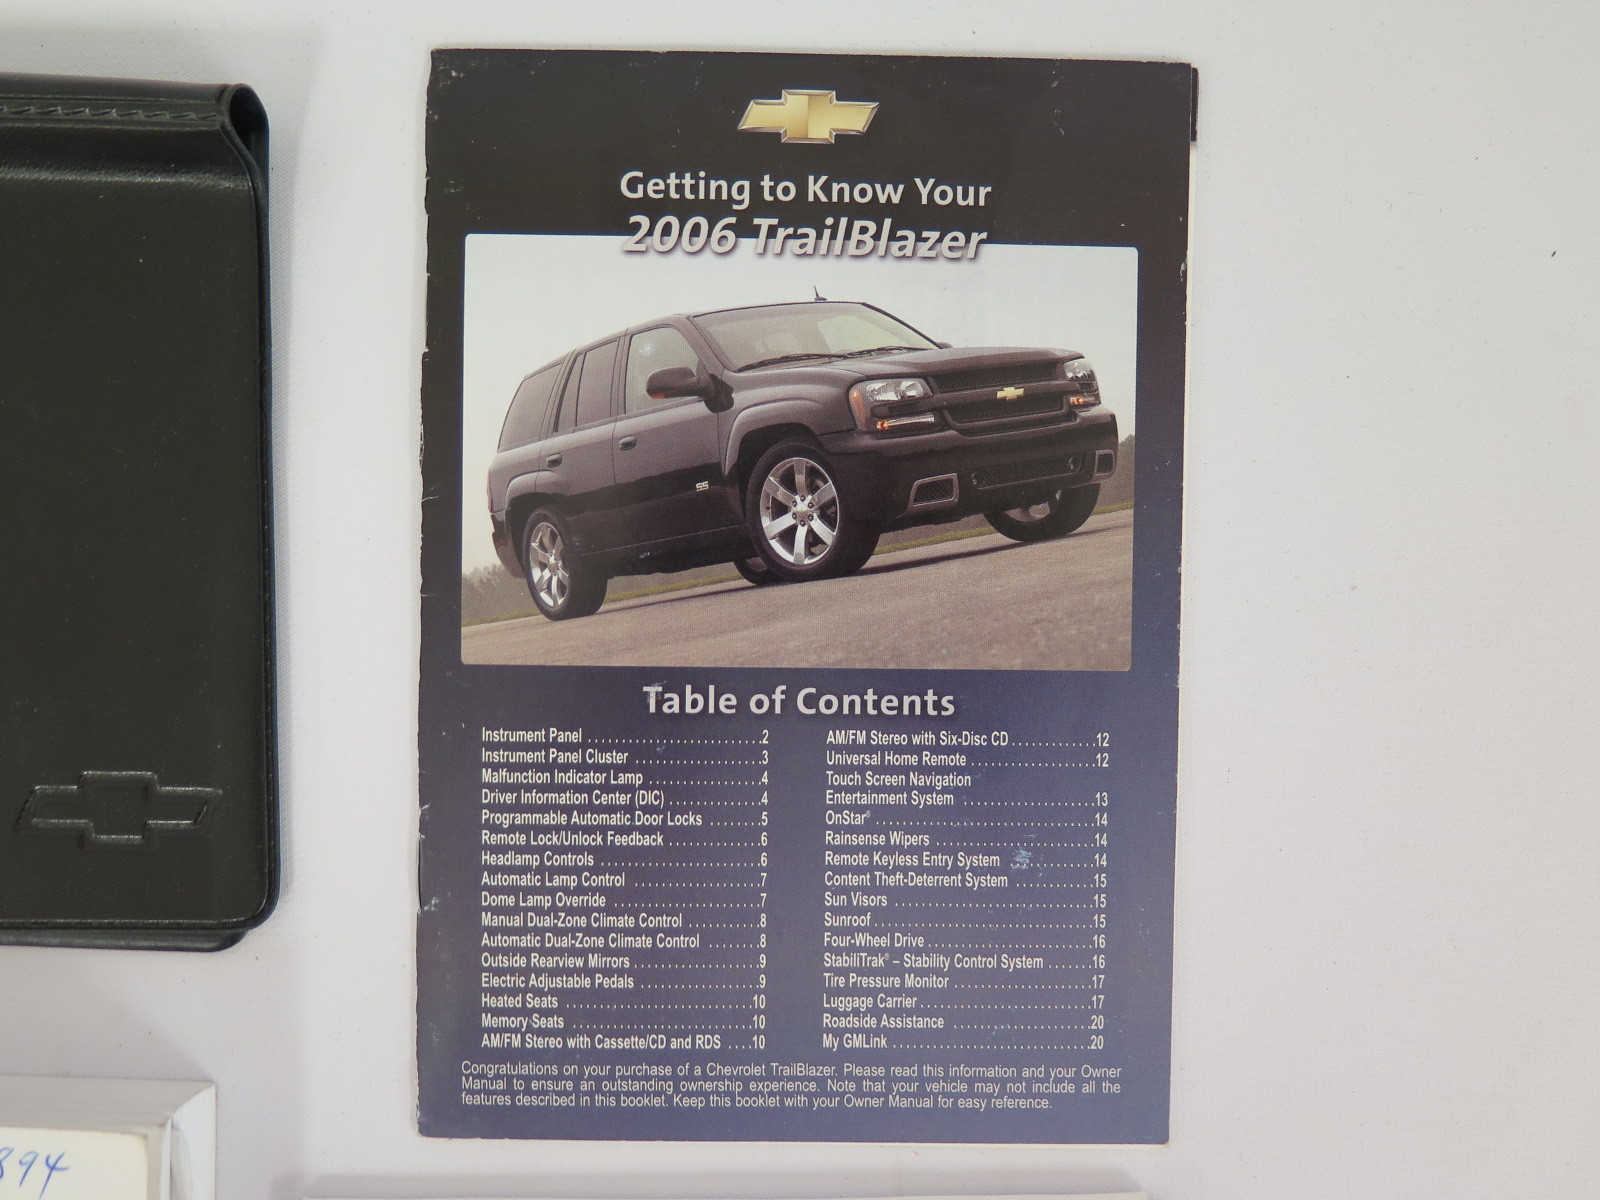 2006 chevy trailblazer manual book user guide manual that easy to 2006 chevy chevrolet trailblazer owners manual book bashful yak rh bashfulyak com 2006 chevy trailblazer lt fandeluxe Images